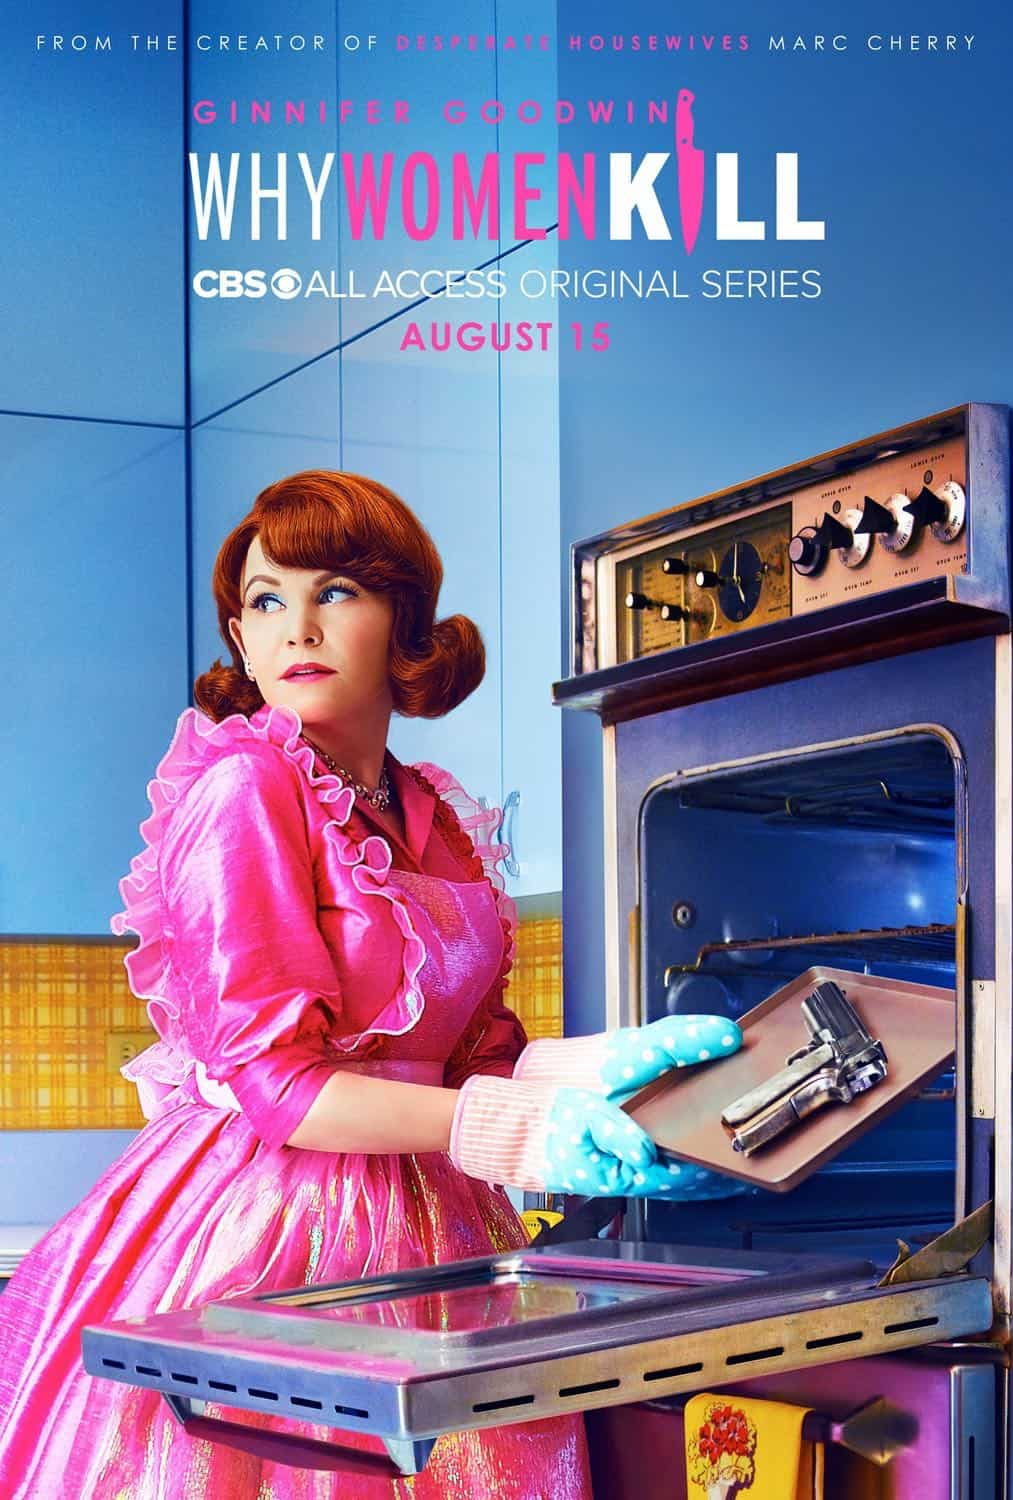 Why Women Kill Season 1 Poster Ginnifer Goodwin